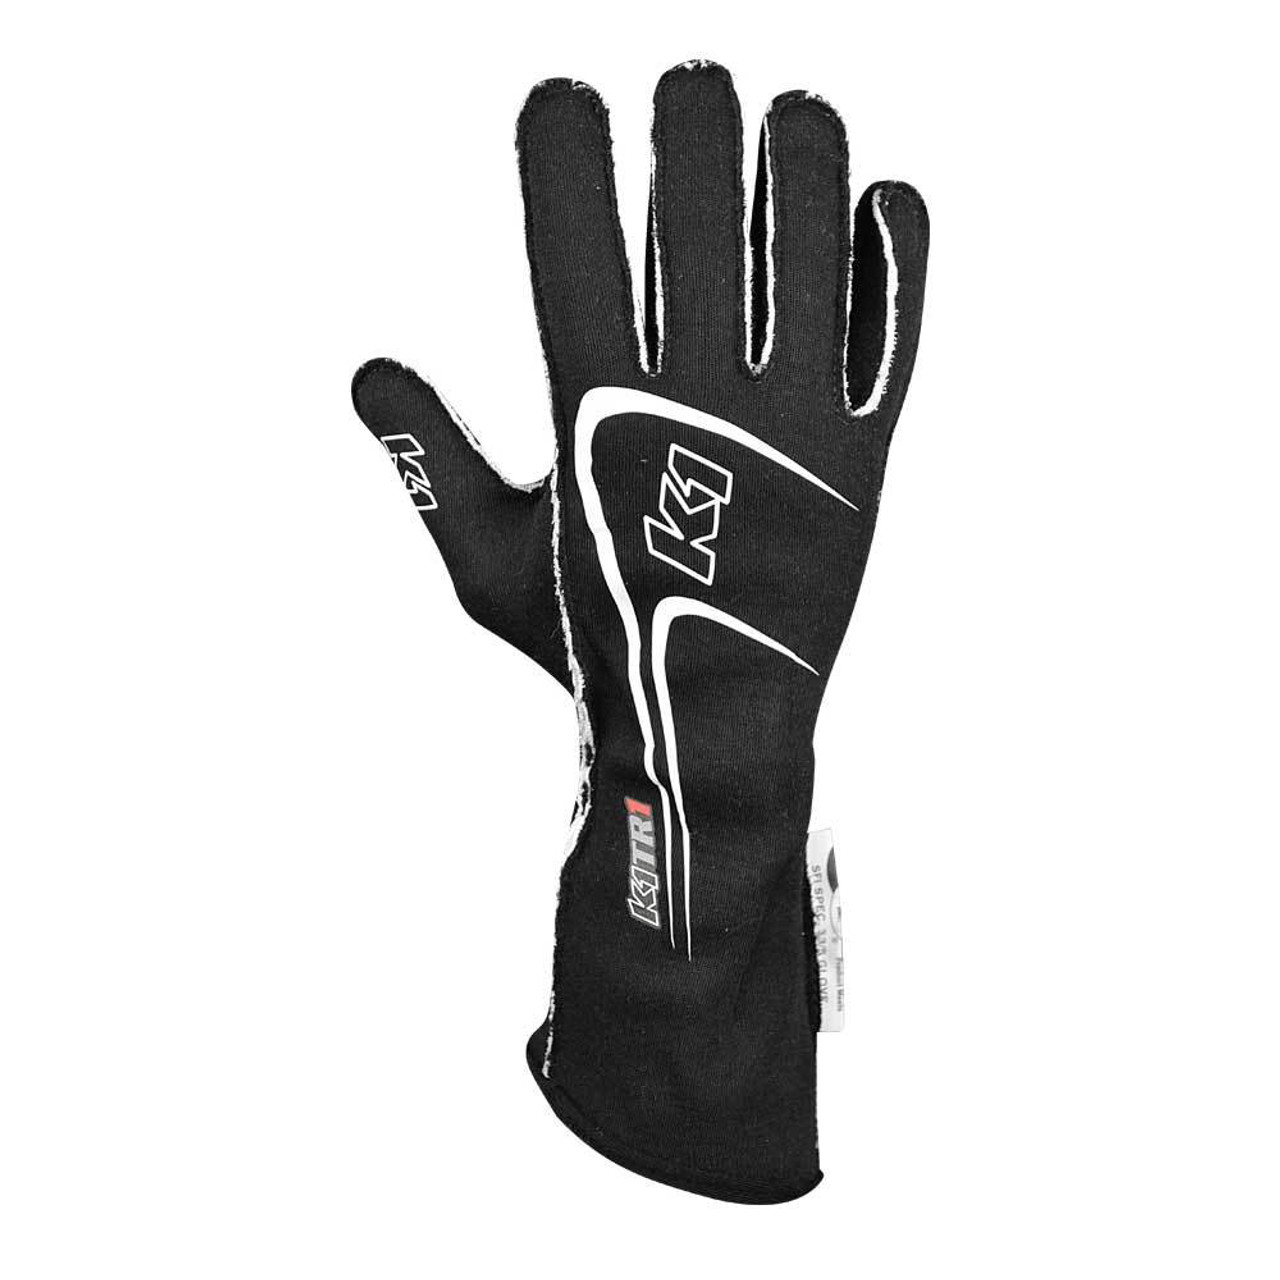 K1 RACEGEAR Gloves, Track 1, Driving, SFI 3.3/5, Double Layer, Nomex, Silicone Palm, Black / White, Youth